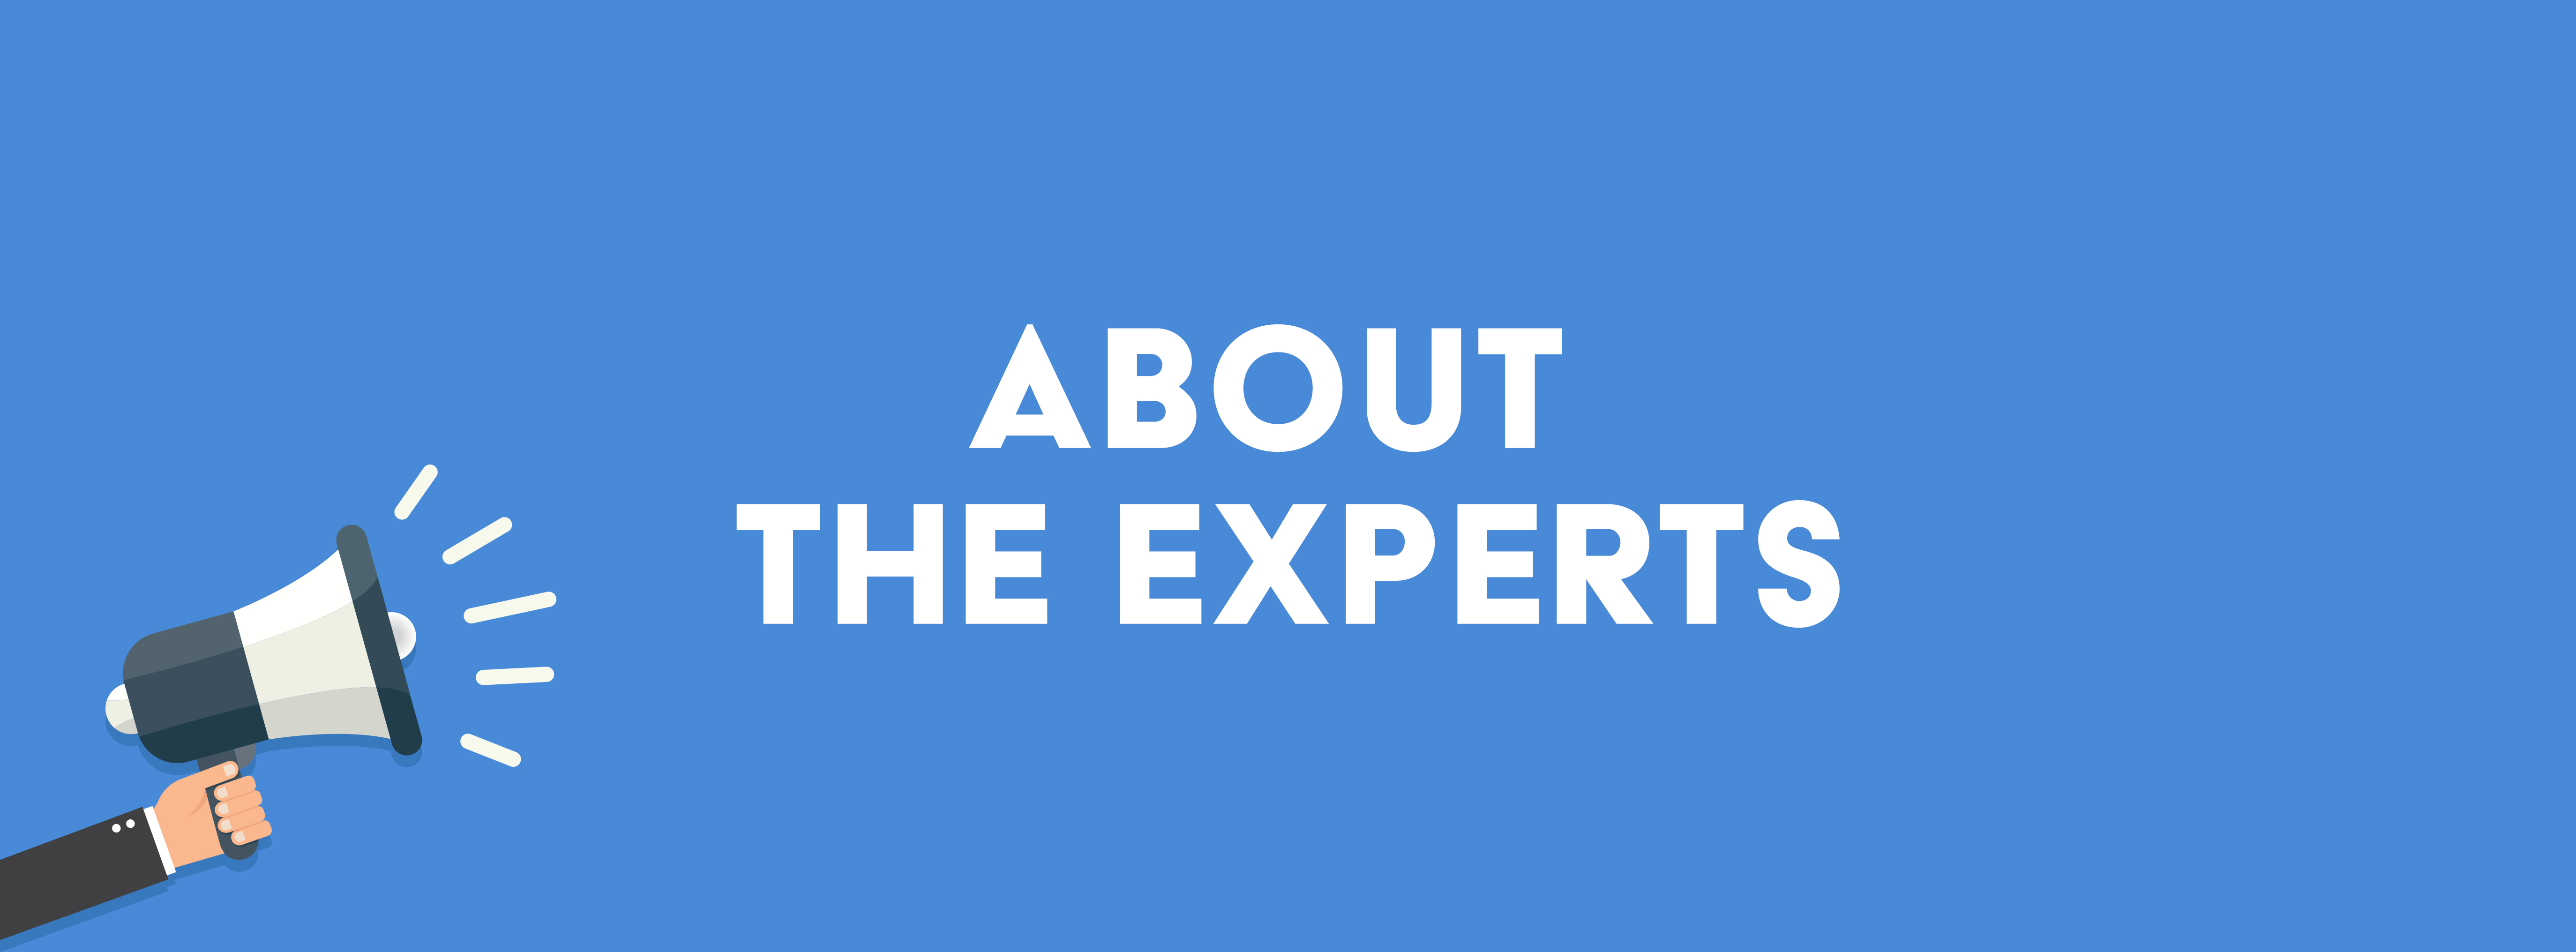 About_Experts